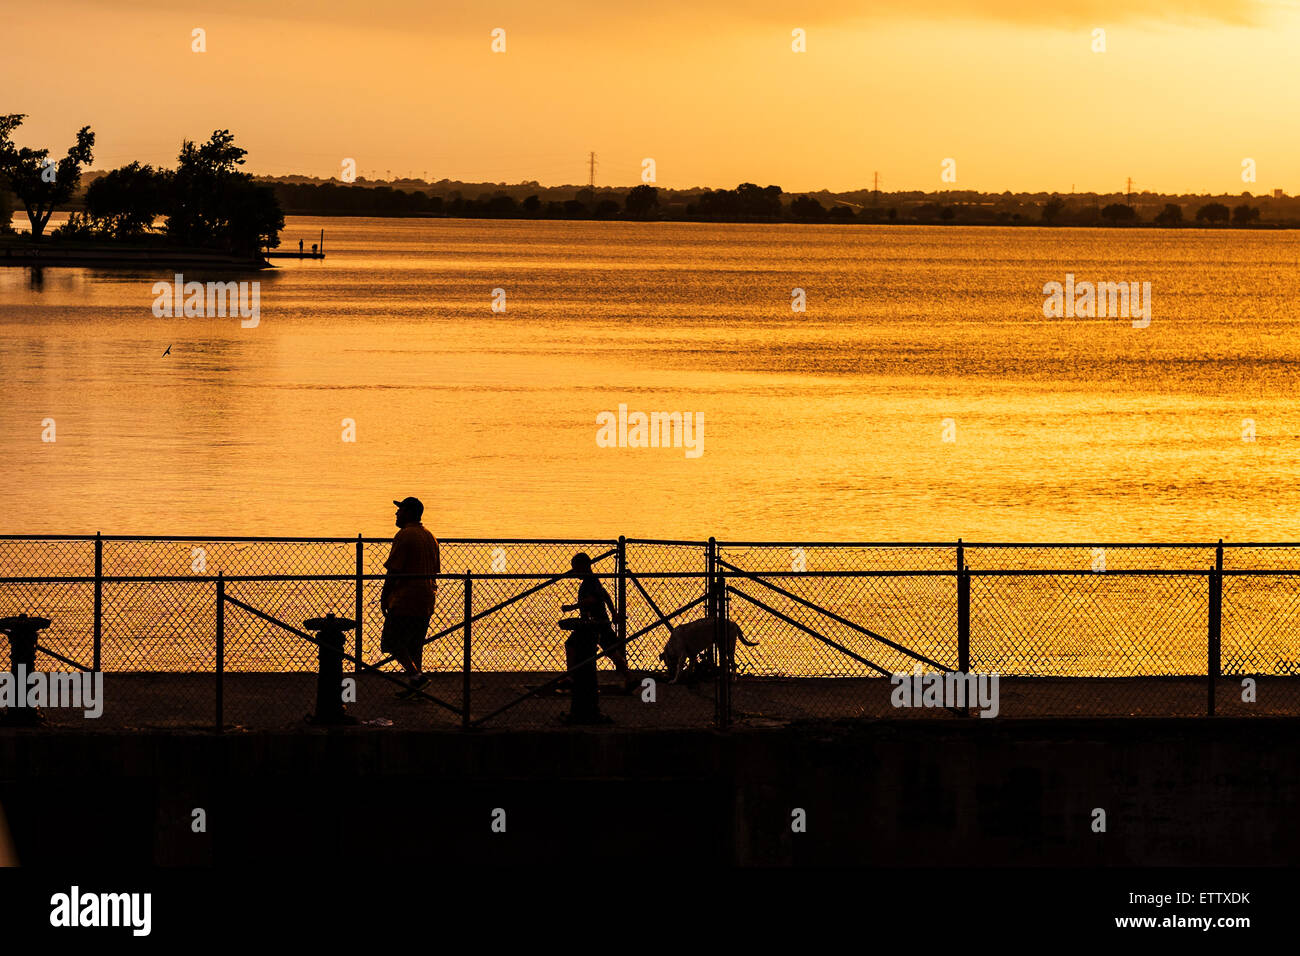 A man boy and dog walk across a levee at overholser dam in a man boy and dog walk across a levee at overholser dam in oklahoma city oklahomausa at sunset sciox Image collections